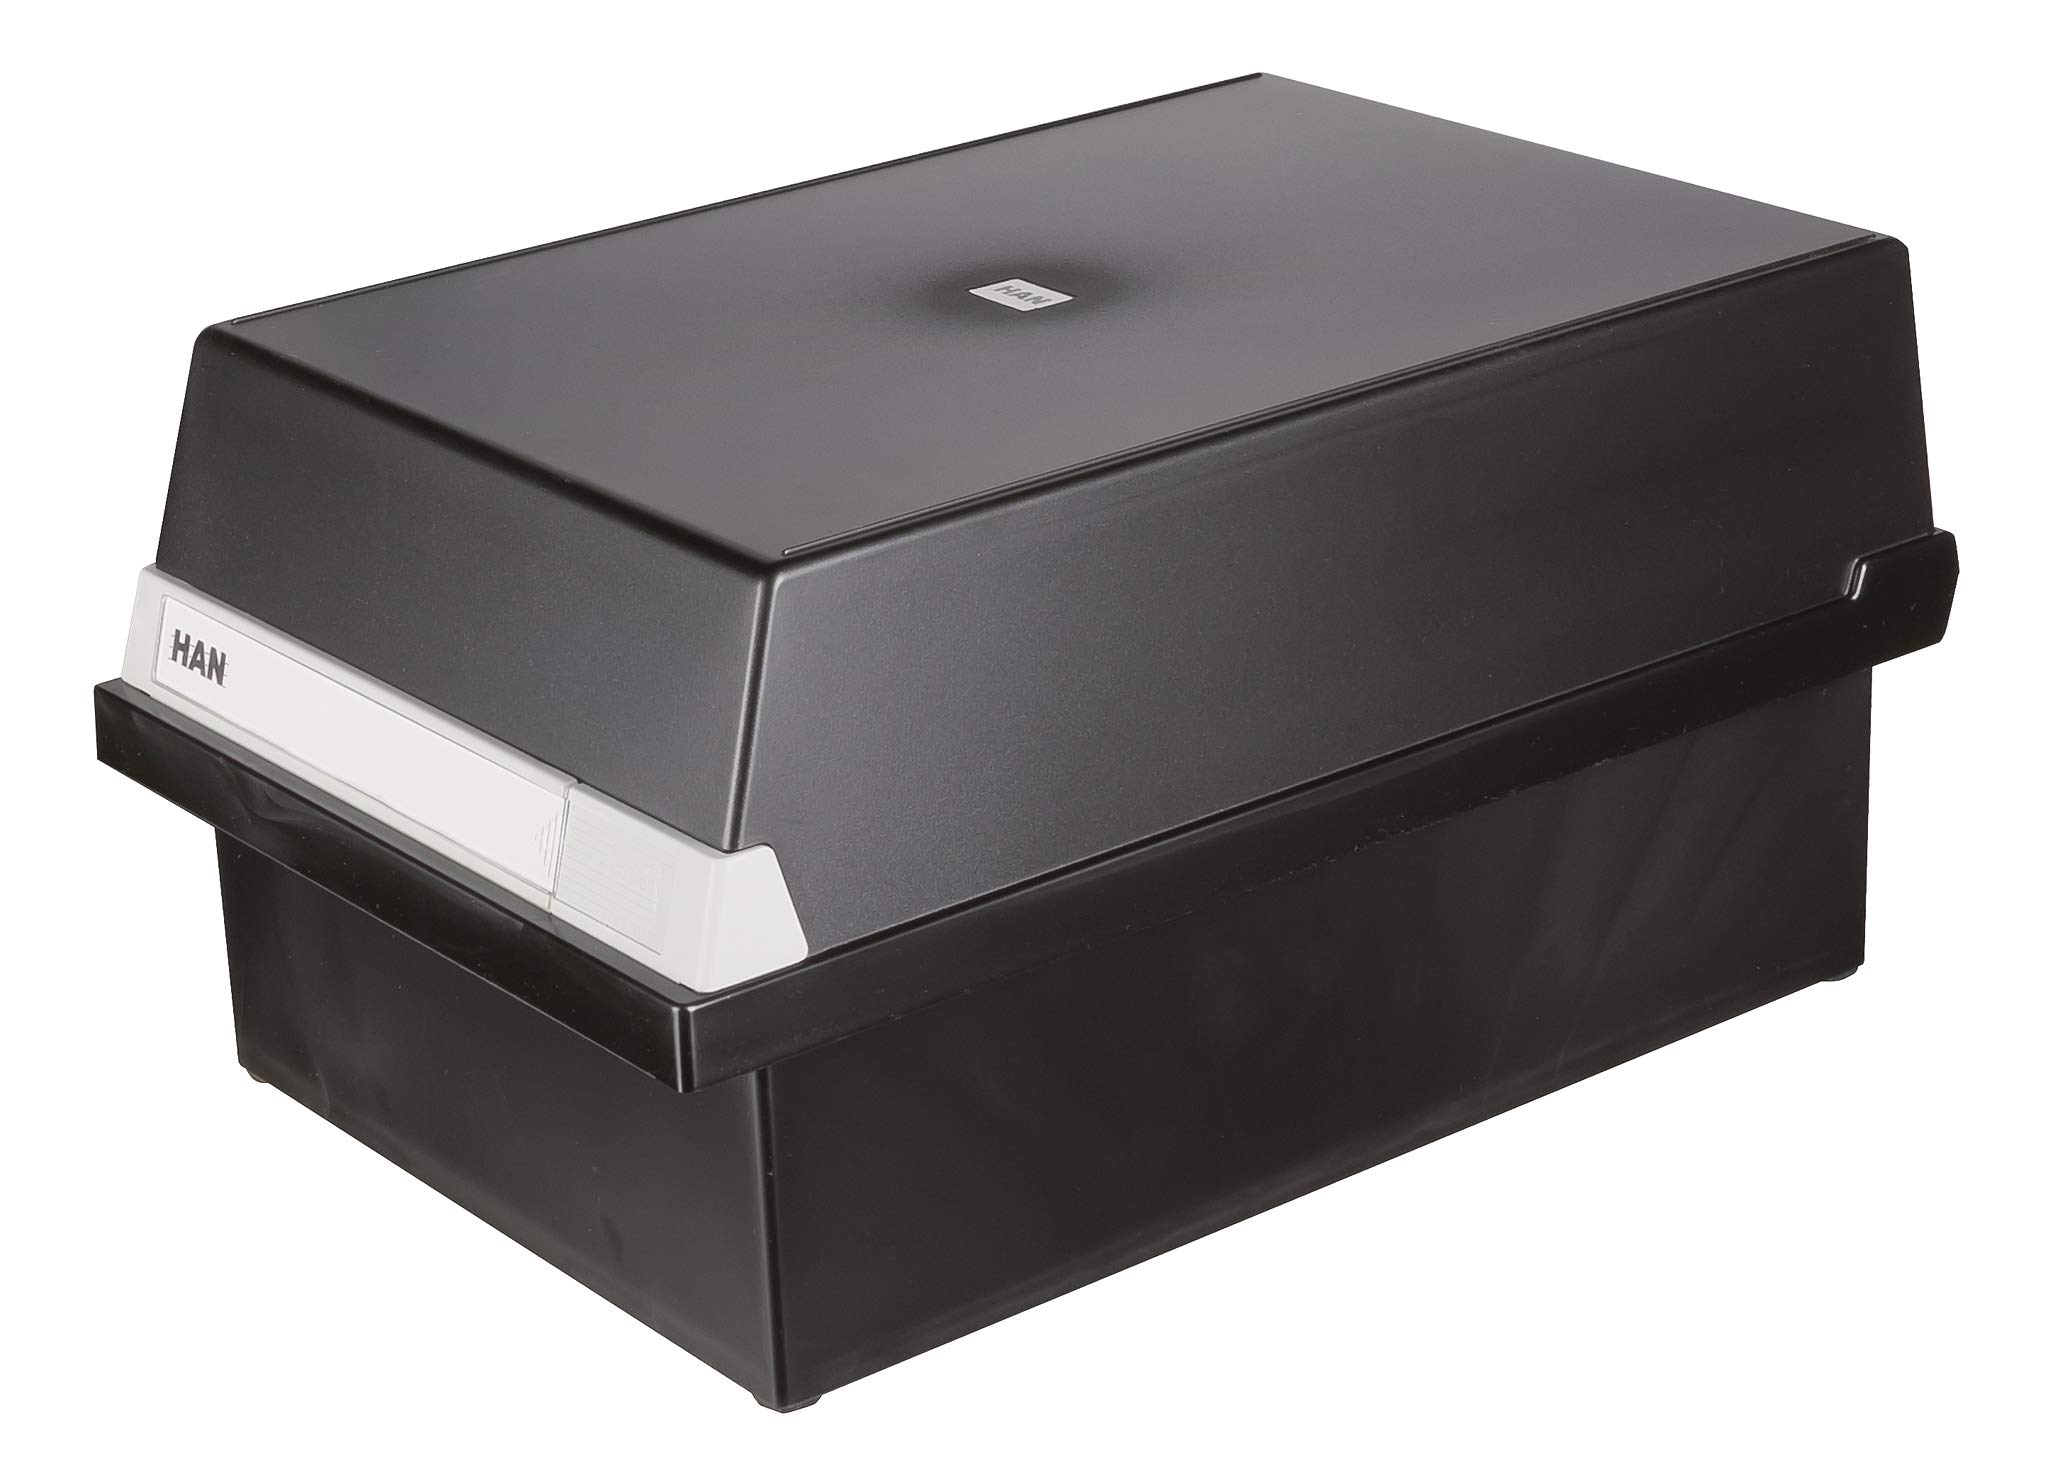 HAN 966-13, Card Filing Box A6 Landscape. Innovative, Attractive Design Holds 800 Cards, readjustable lid Supplied with Large Inscription Label, Black by HAN